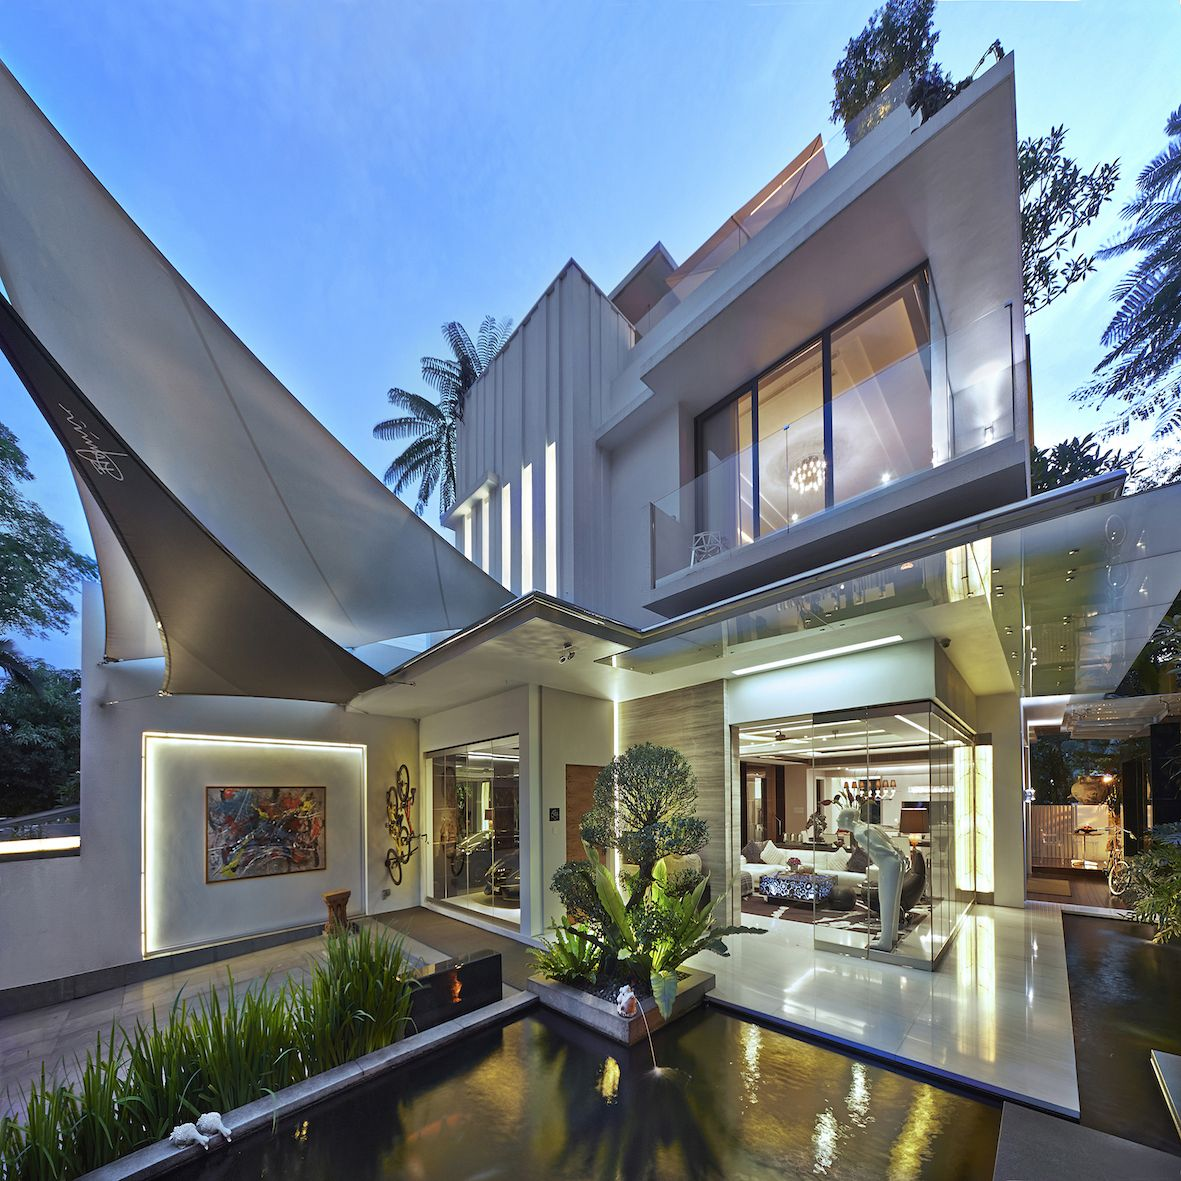 This Ecuadorian Mansion Comes With A Ridiculously Cool: Www.iida-intl.com#Luxurious Residential Designs#Modern